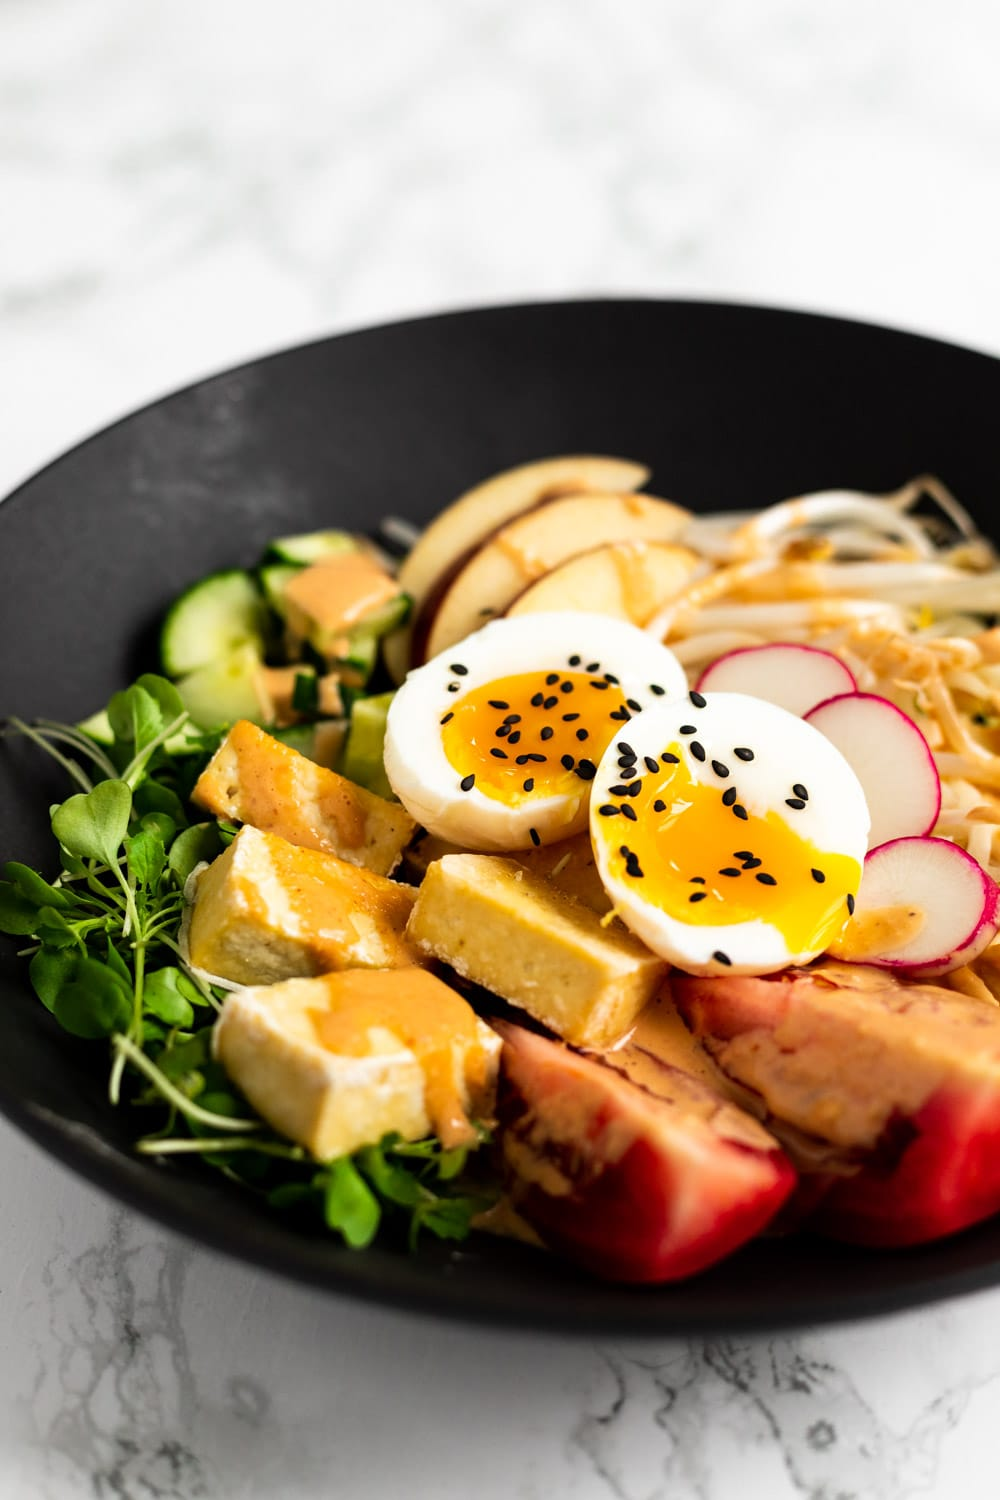 A side view of a bowl of gado gado.